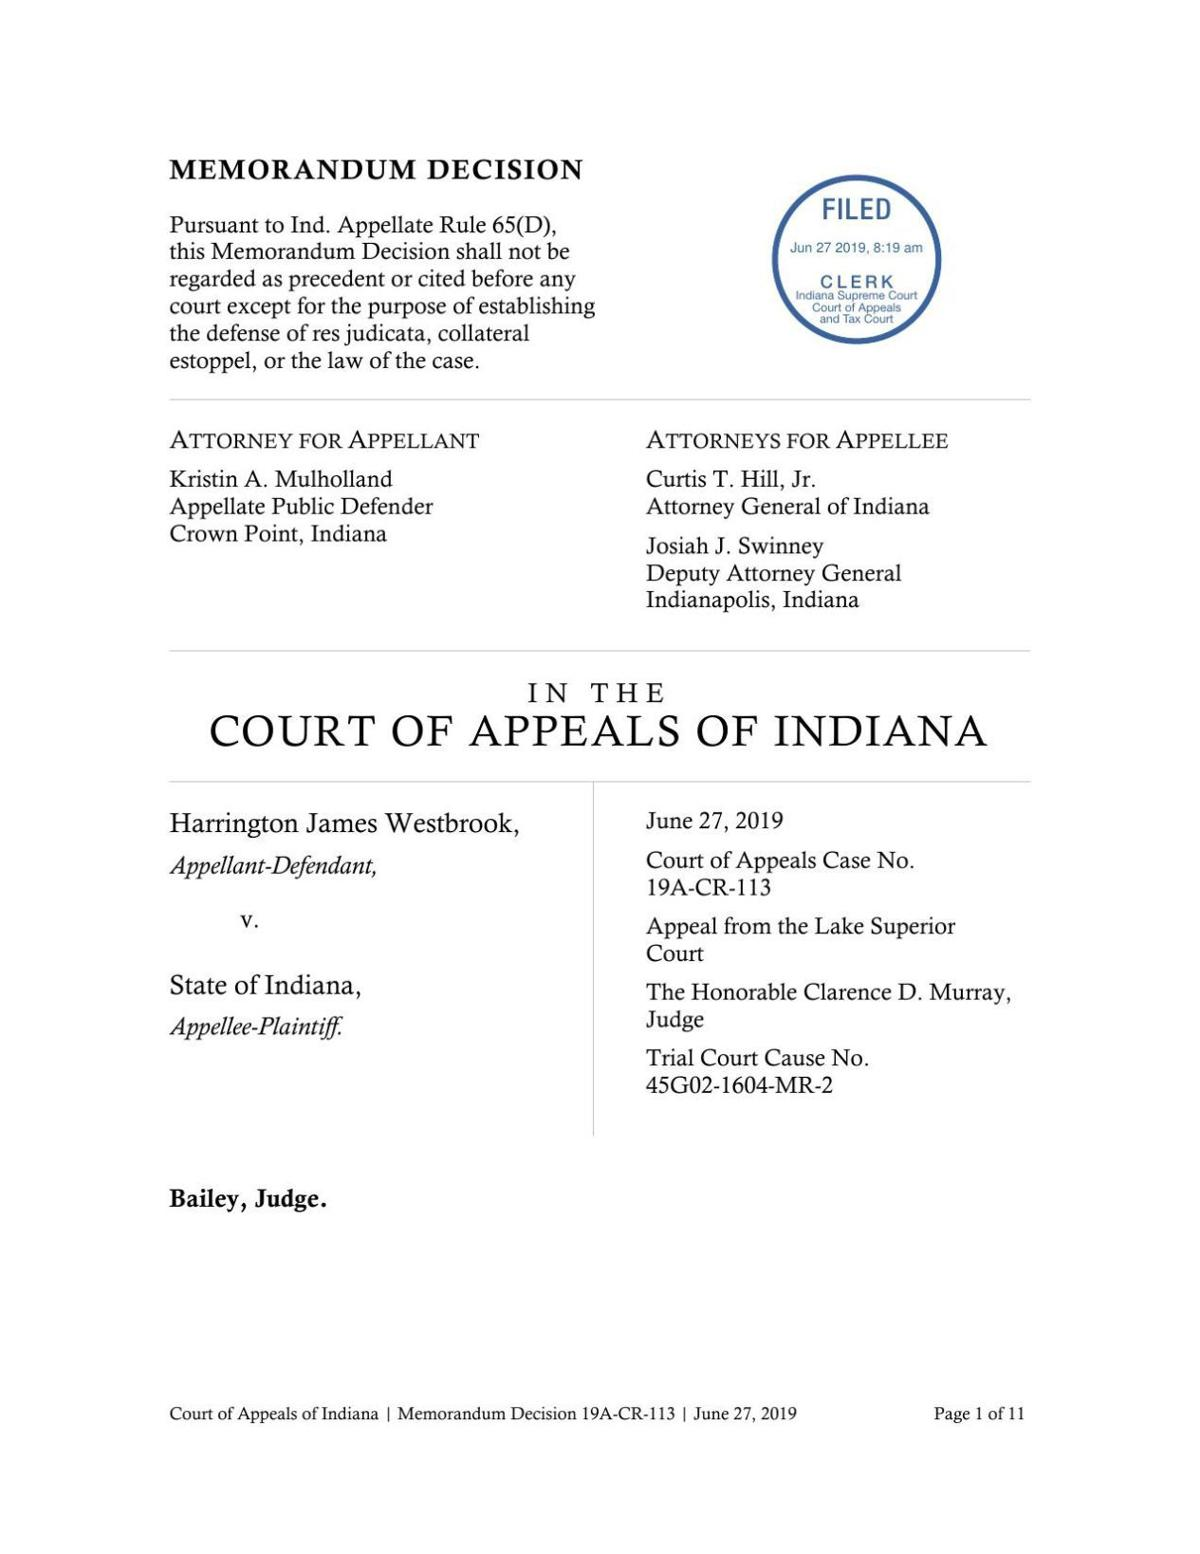 Westbrook v. State ruling of Indiana Court of Appeals